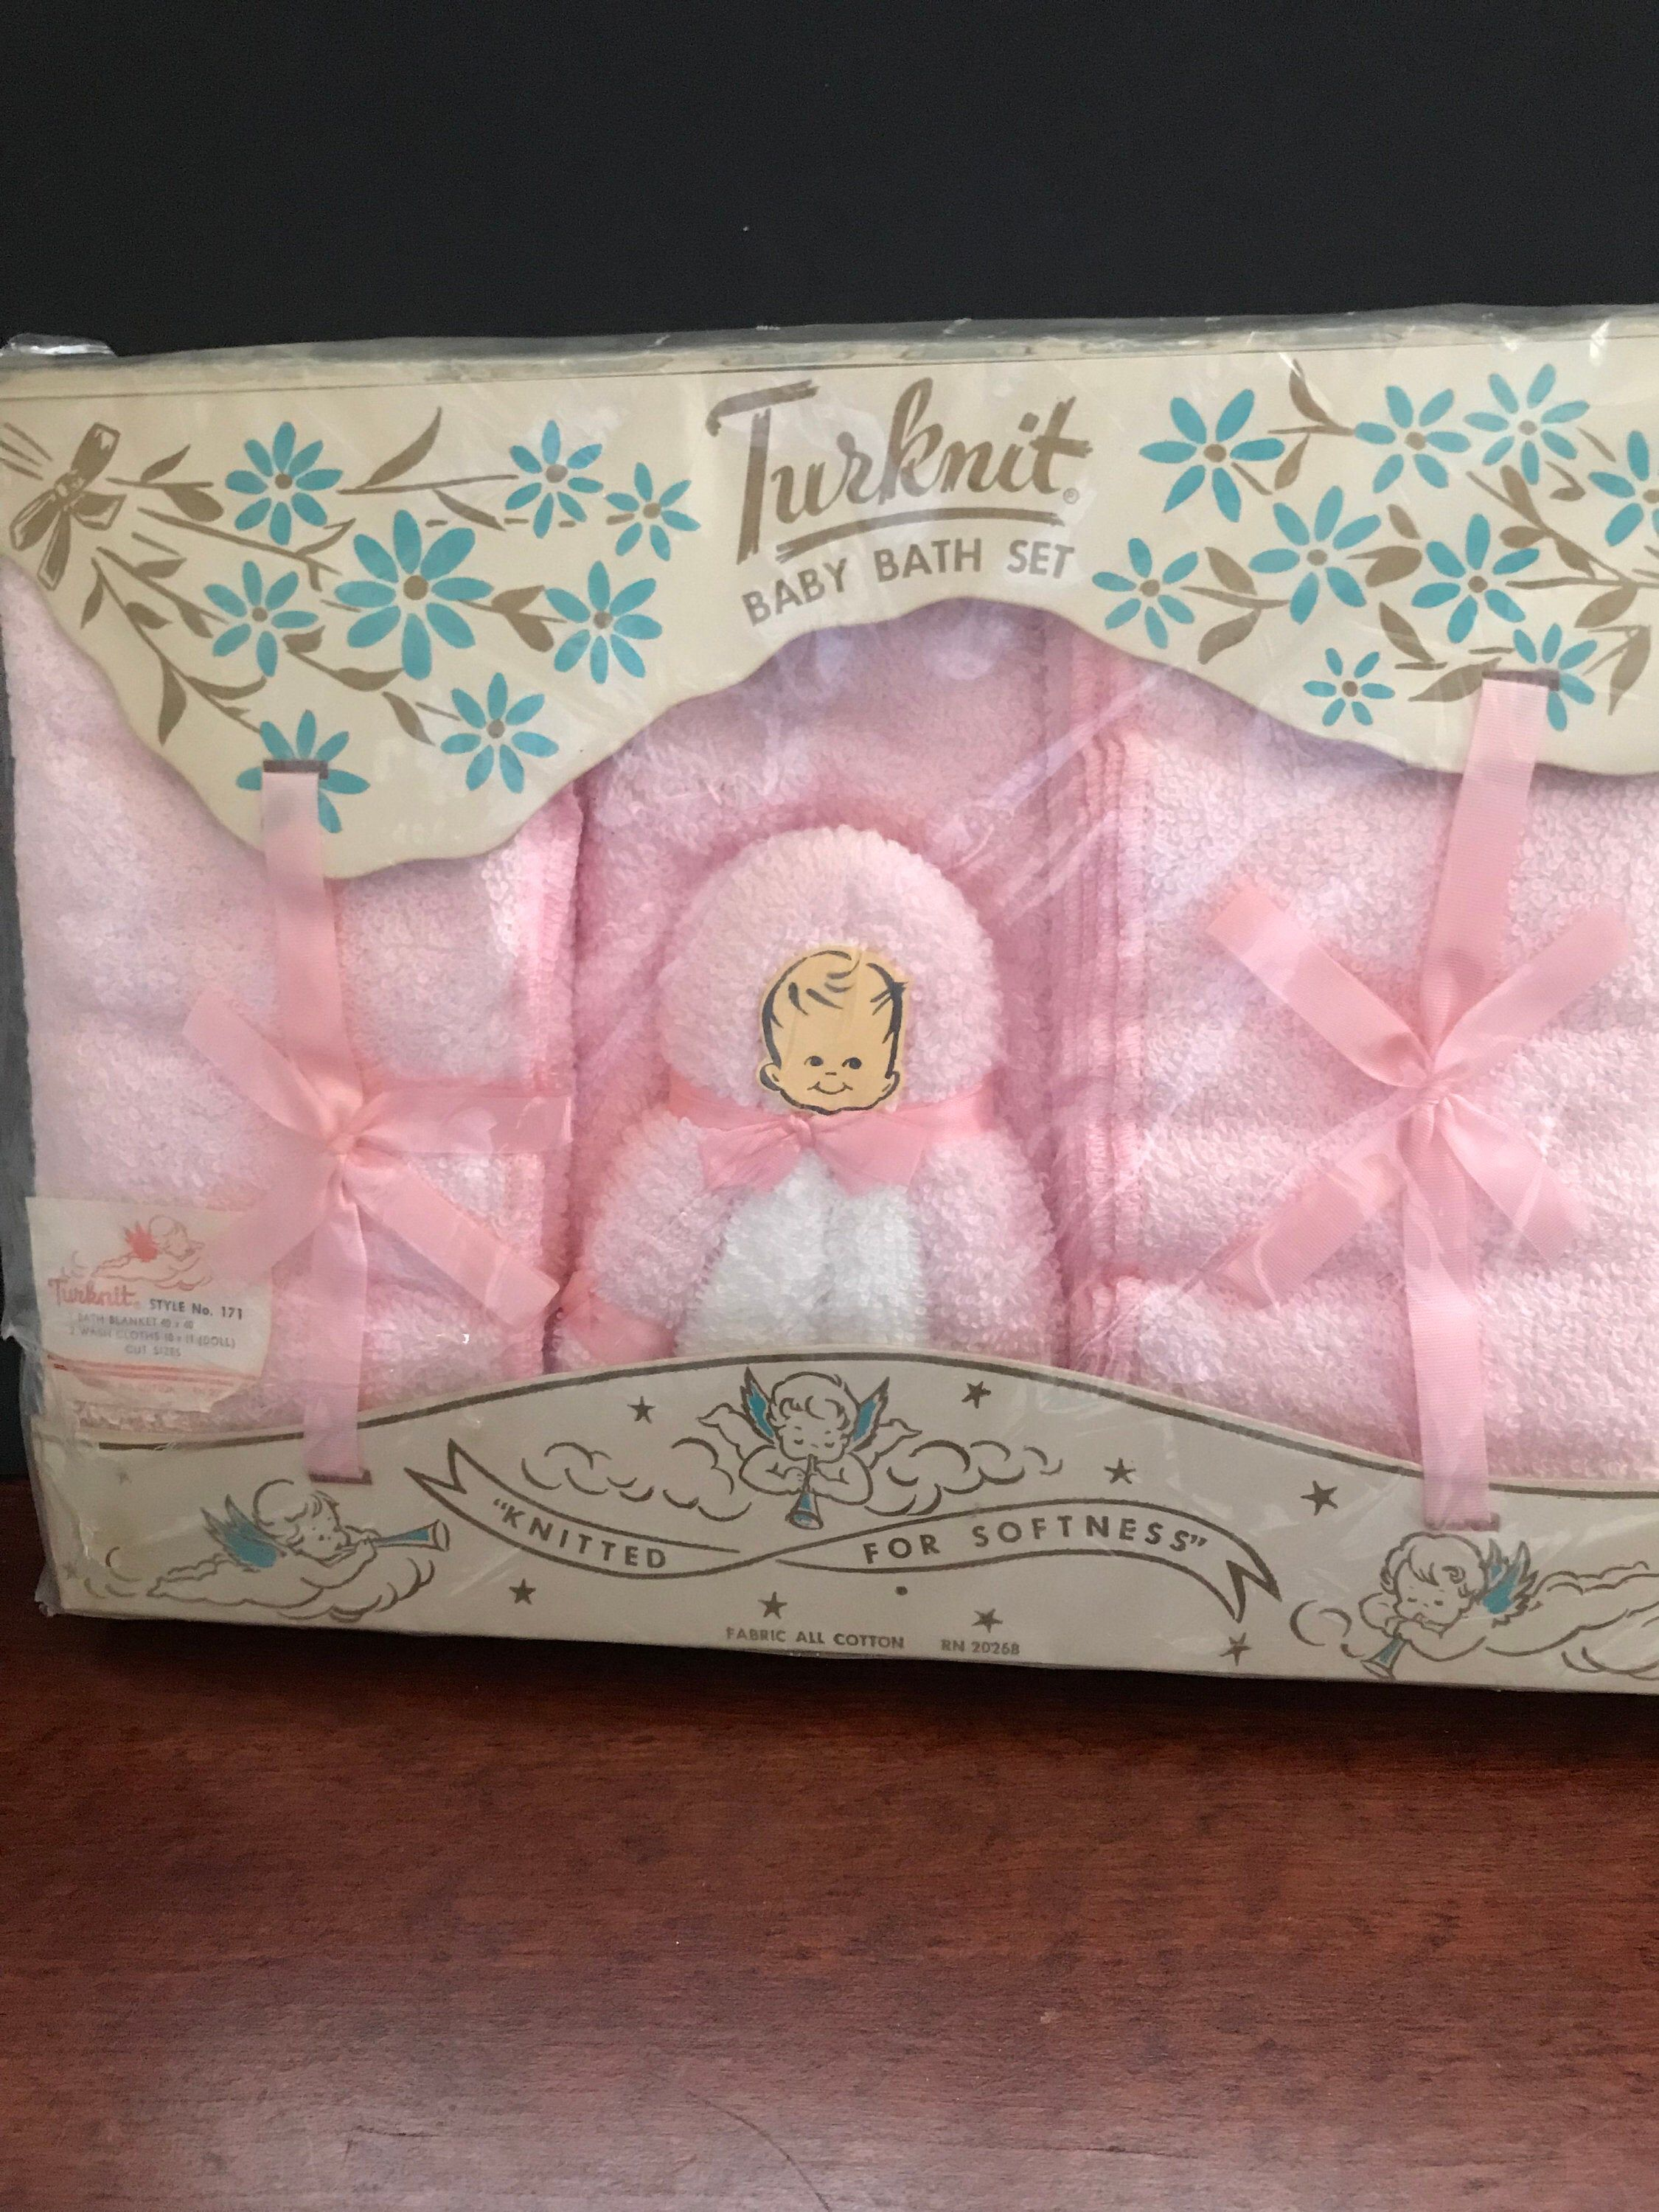 Vintage Turknit Baby Towel And Washcloth Gift Set Baby Towel Baby Washcloth Gifts